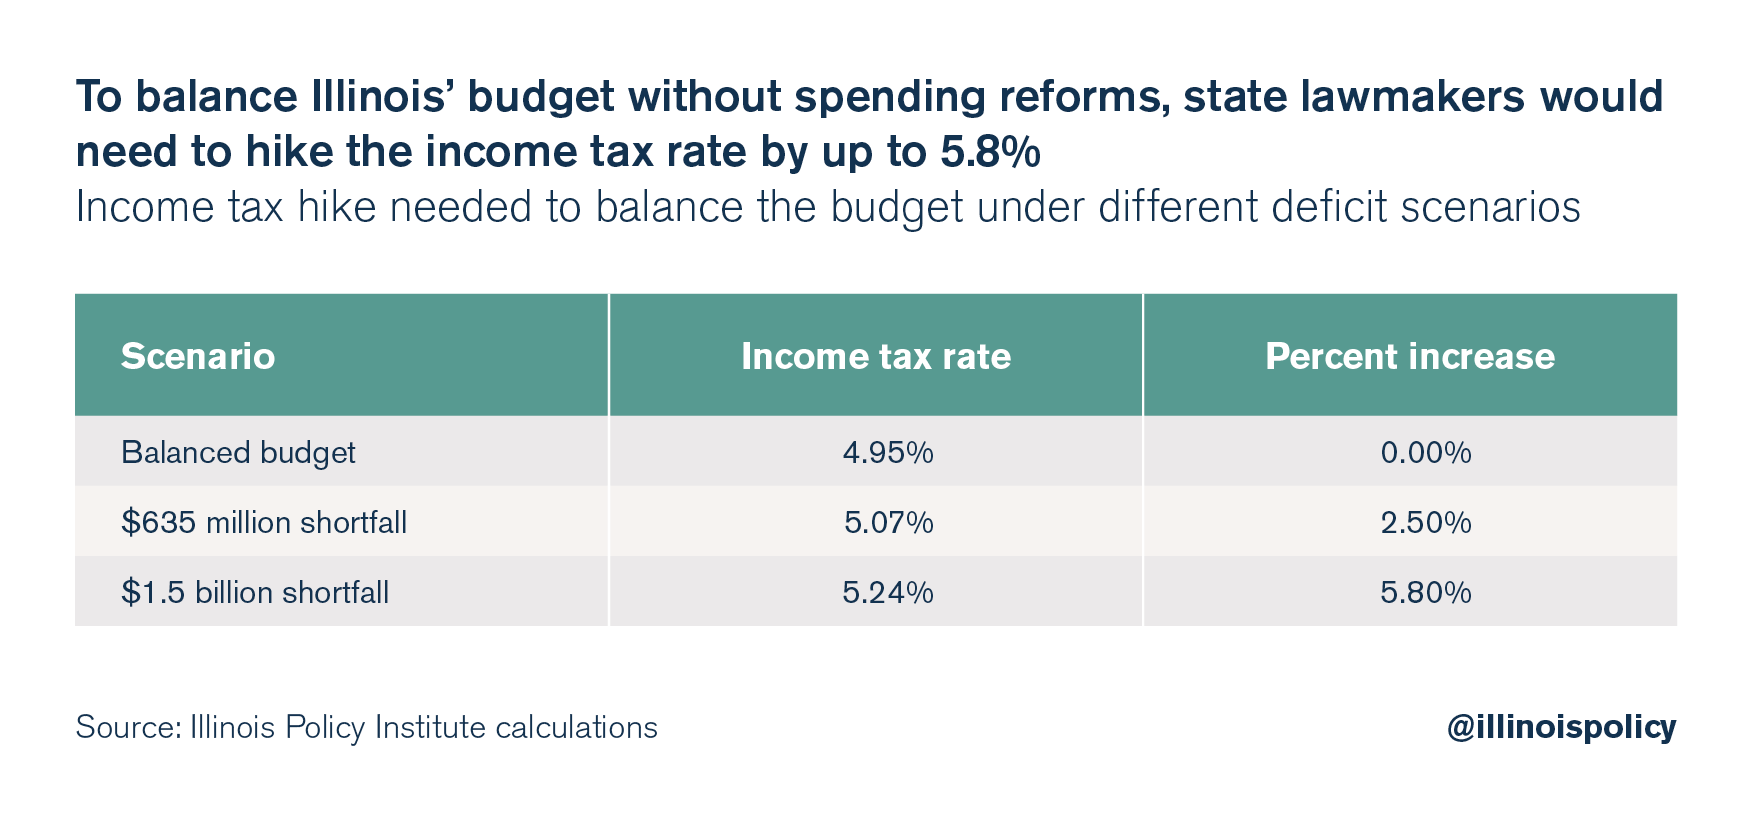 To balance Illinois' budget without spending reforms, state lawmakers would need to hike the income tax rate by up to 5.8%